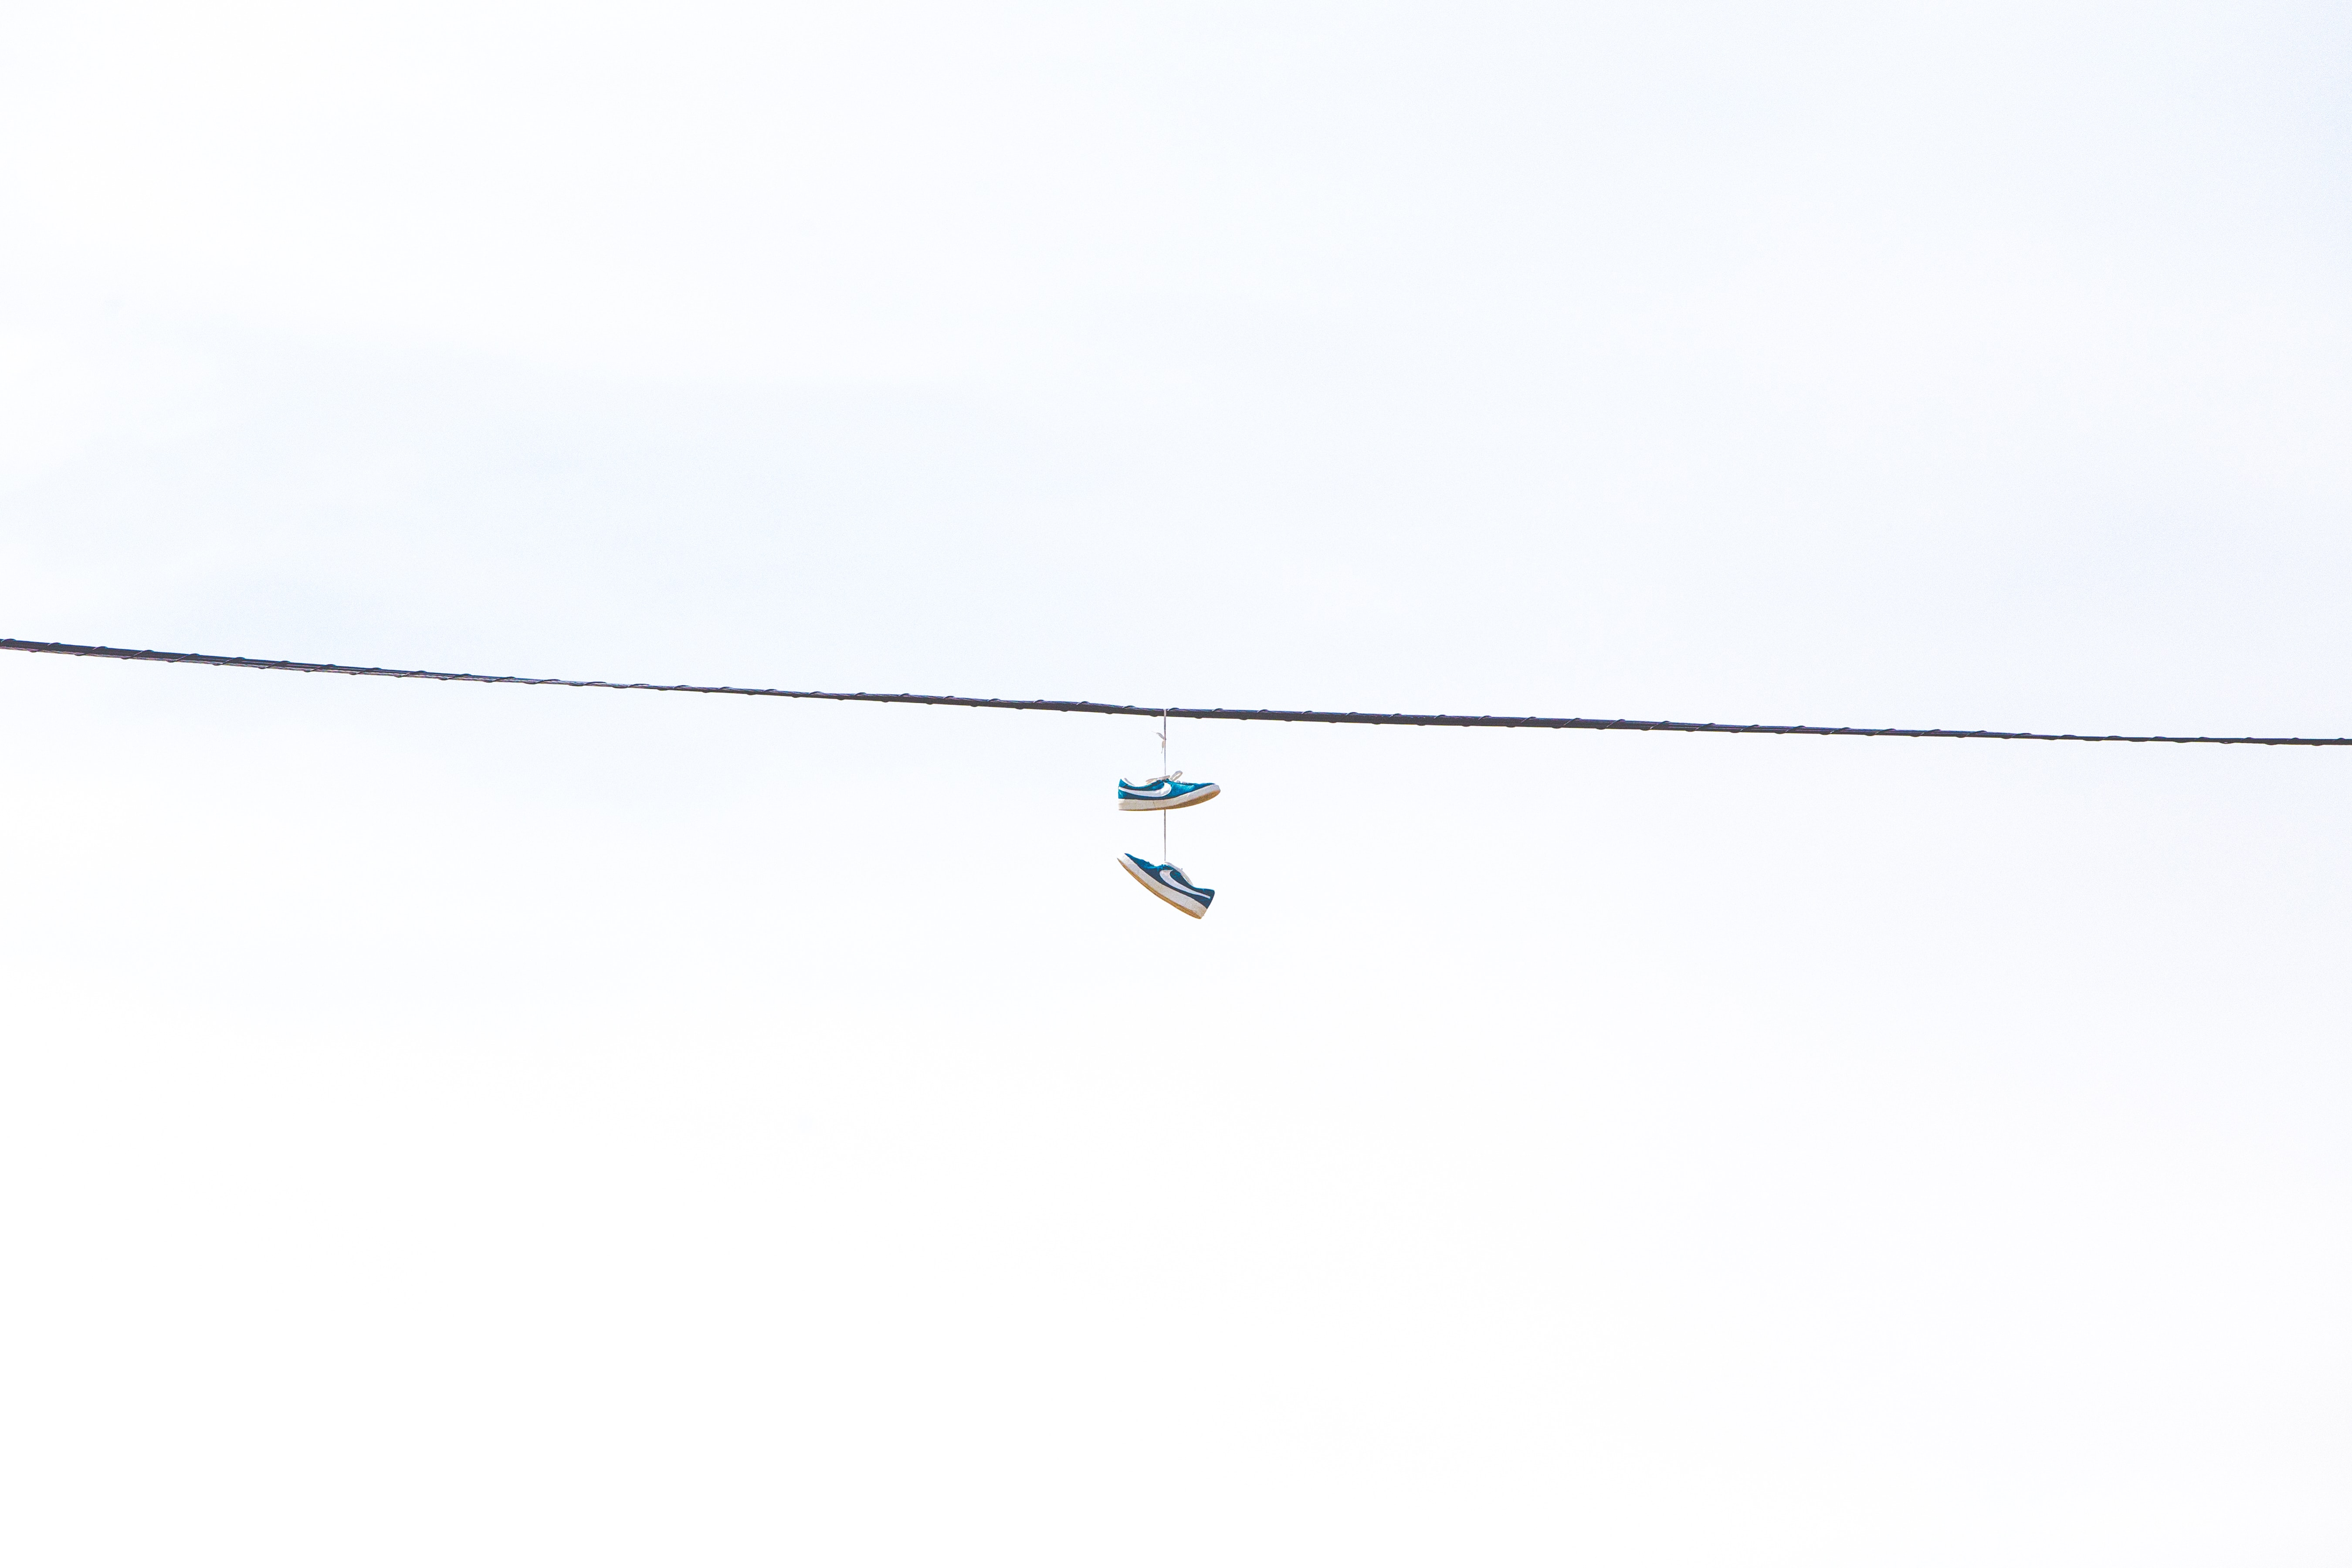 A pair of shoes hanging from a power line